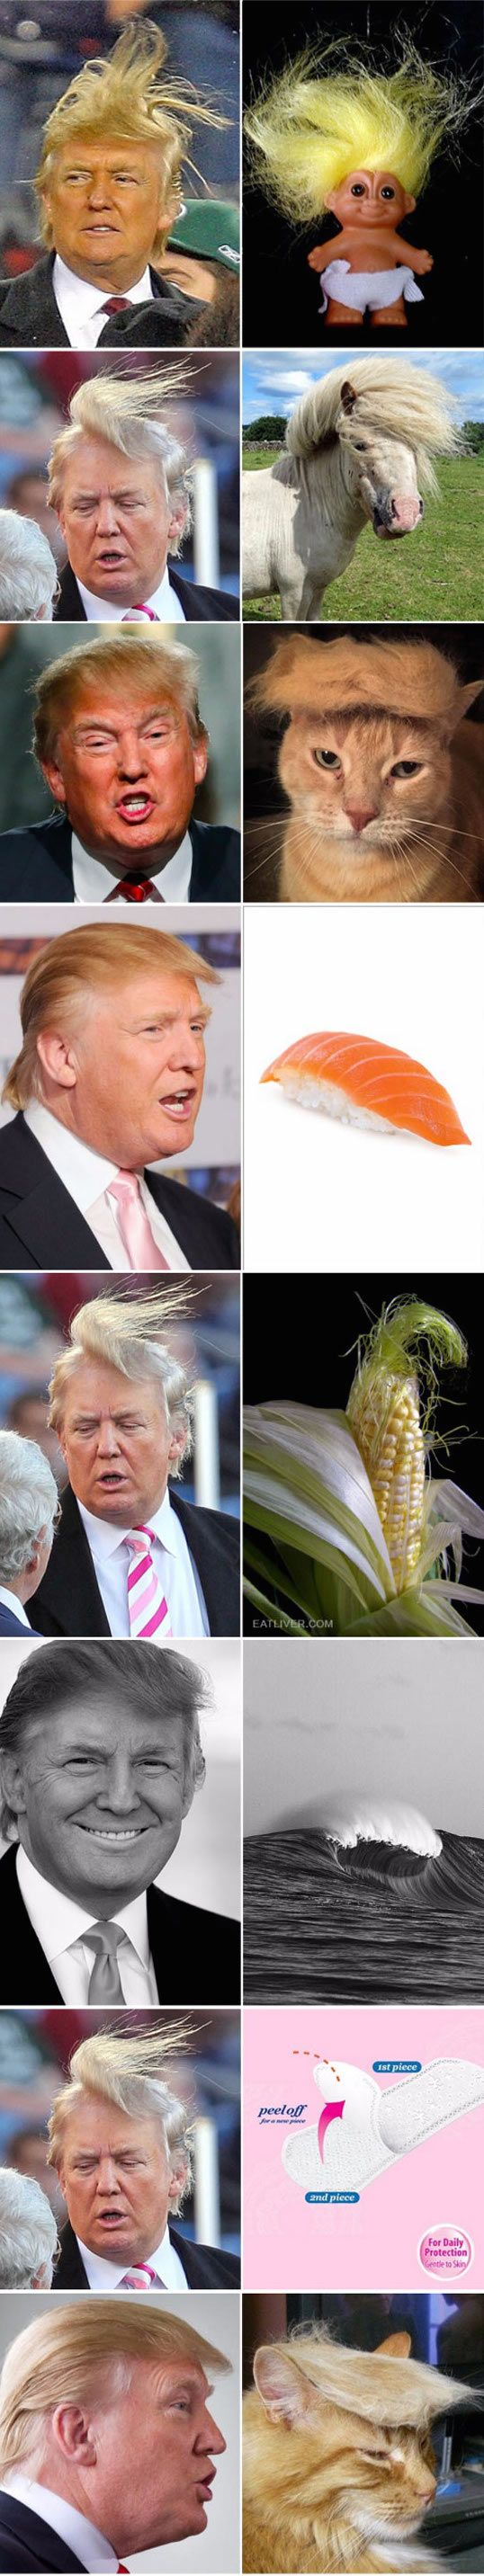 20 things Donald Trump looks like | The Poke